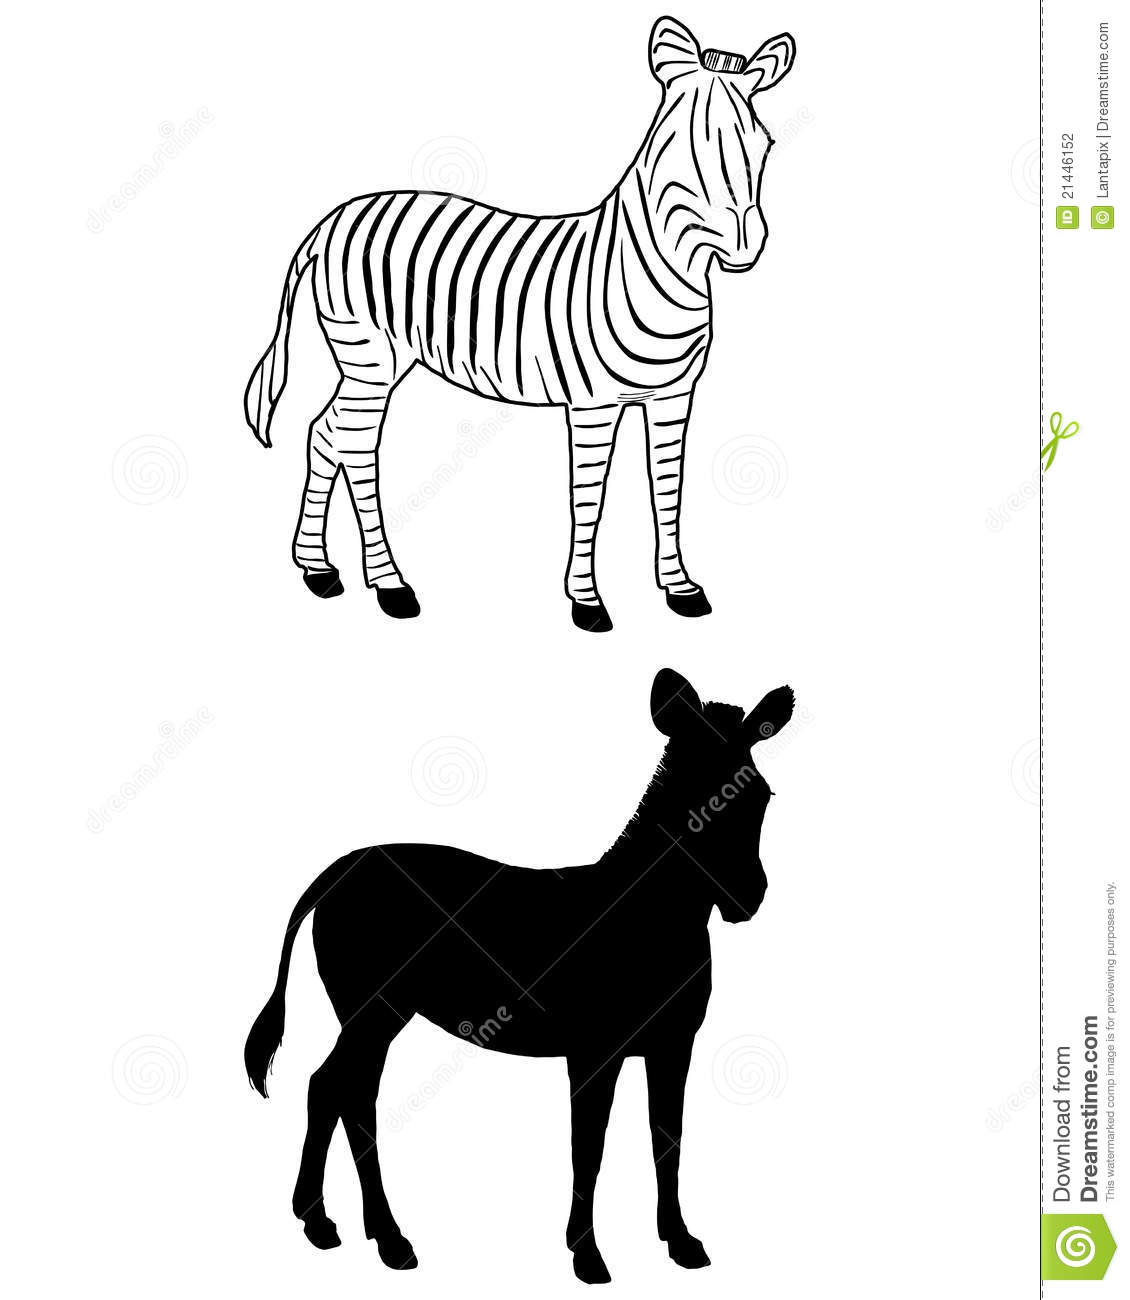 Zebra Silhouette Stock Vector Illustration Of Young